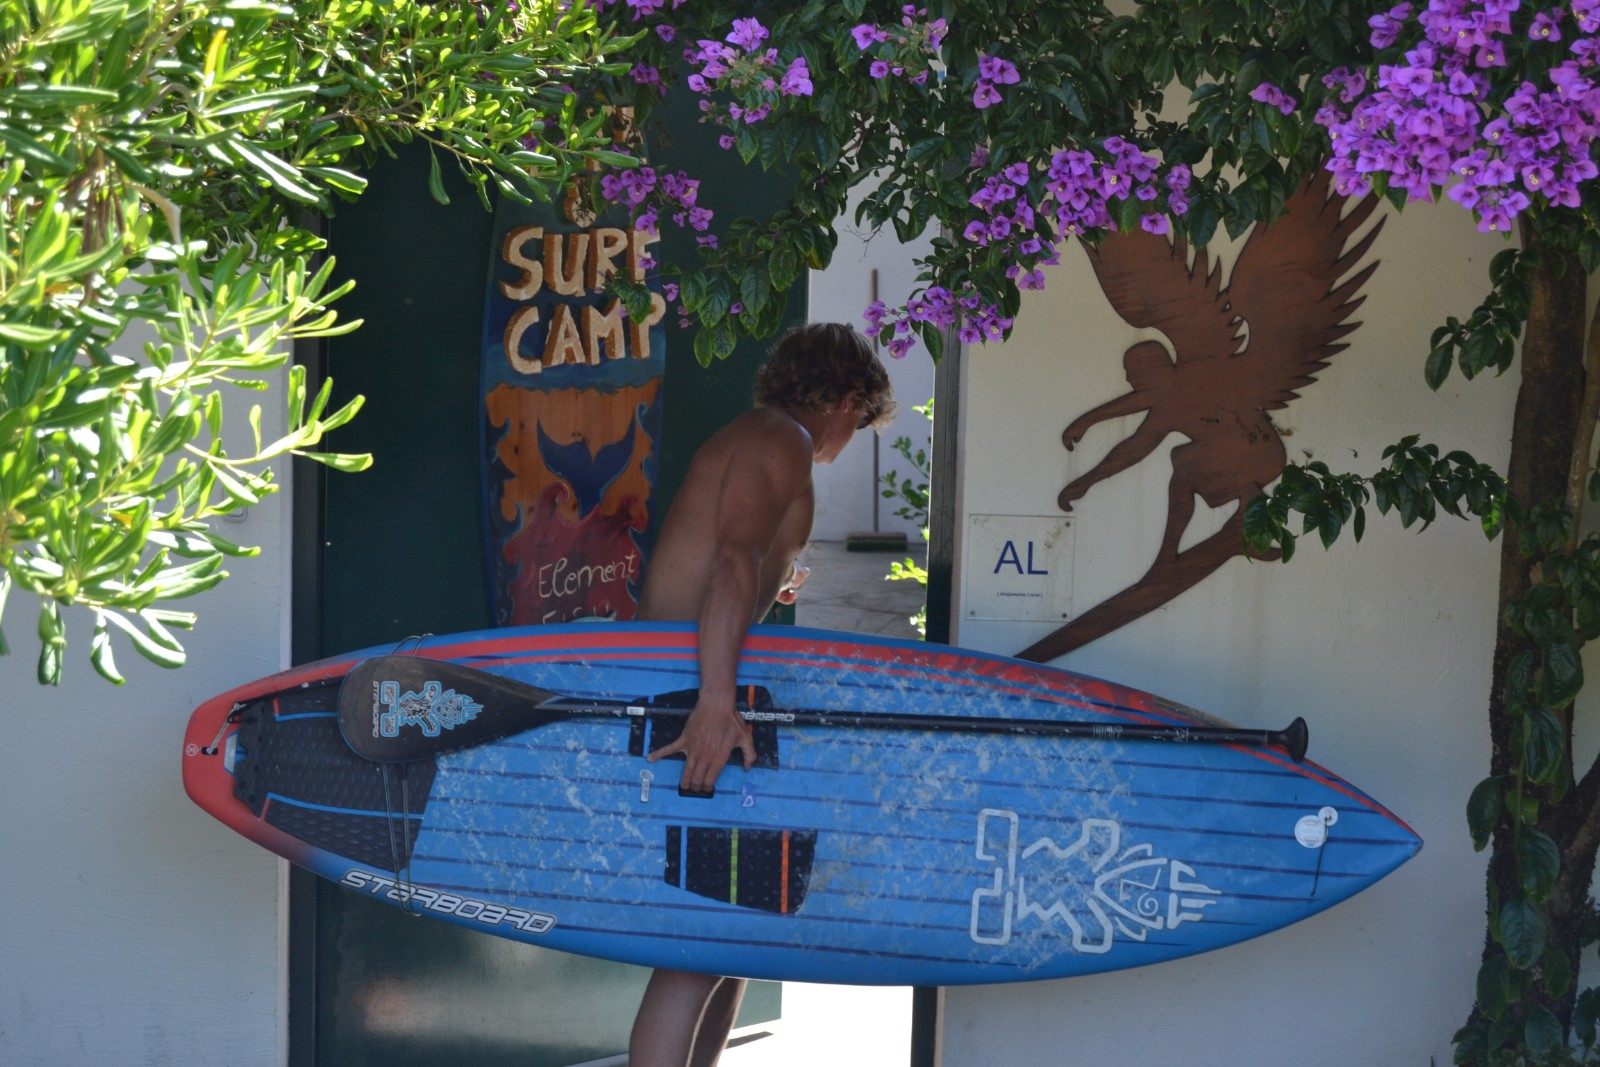 Standup paddle surfer at ElementFish surfcamp, Portugal